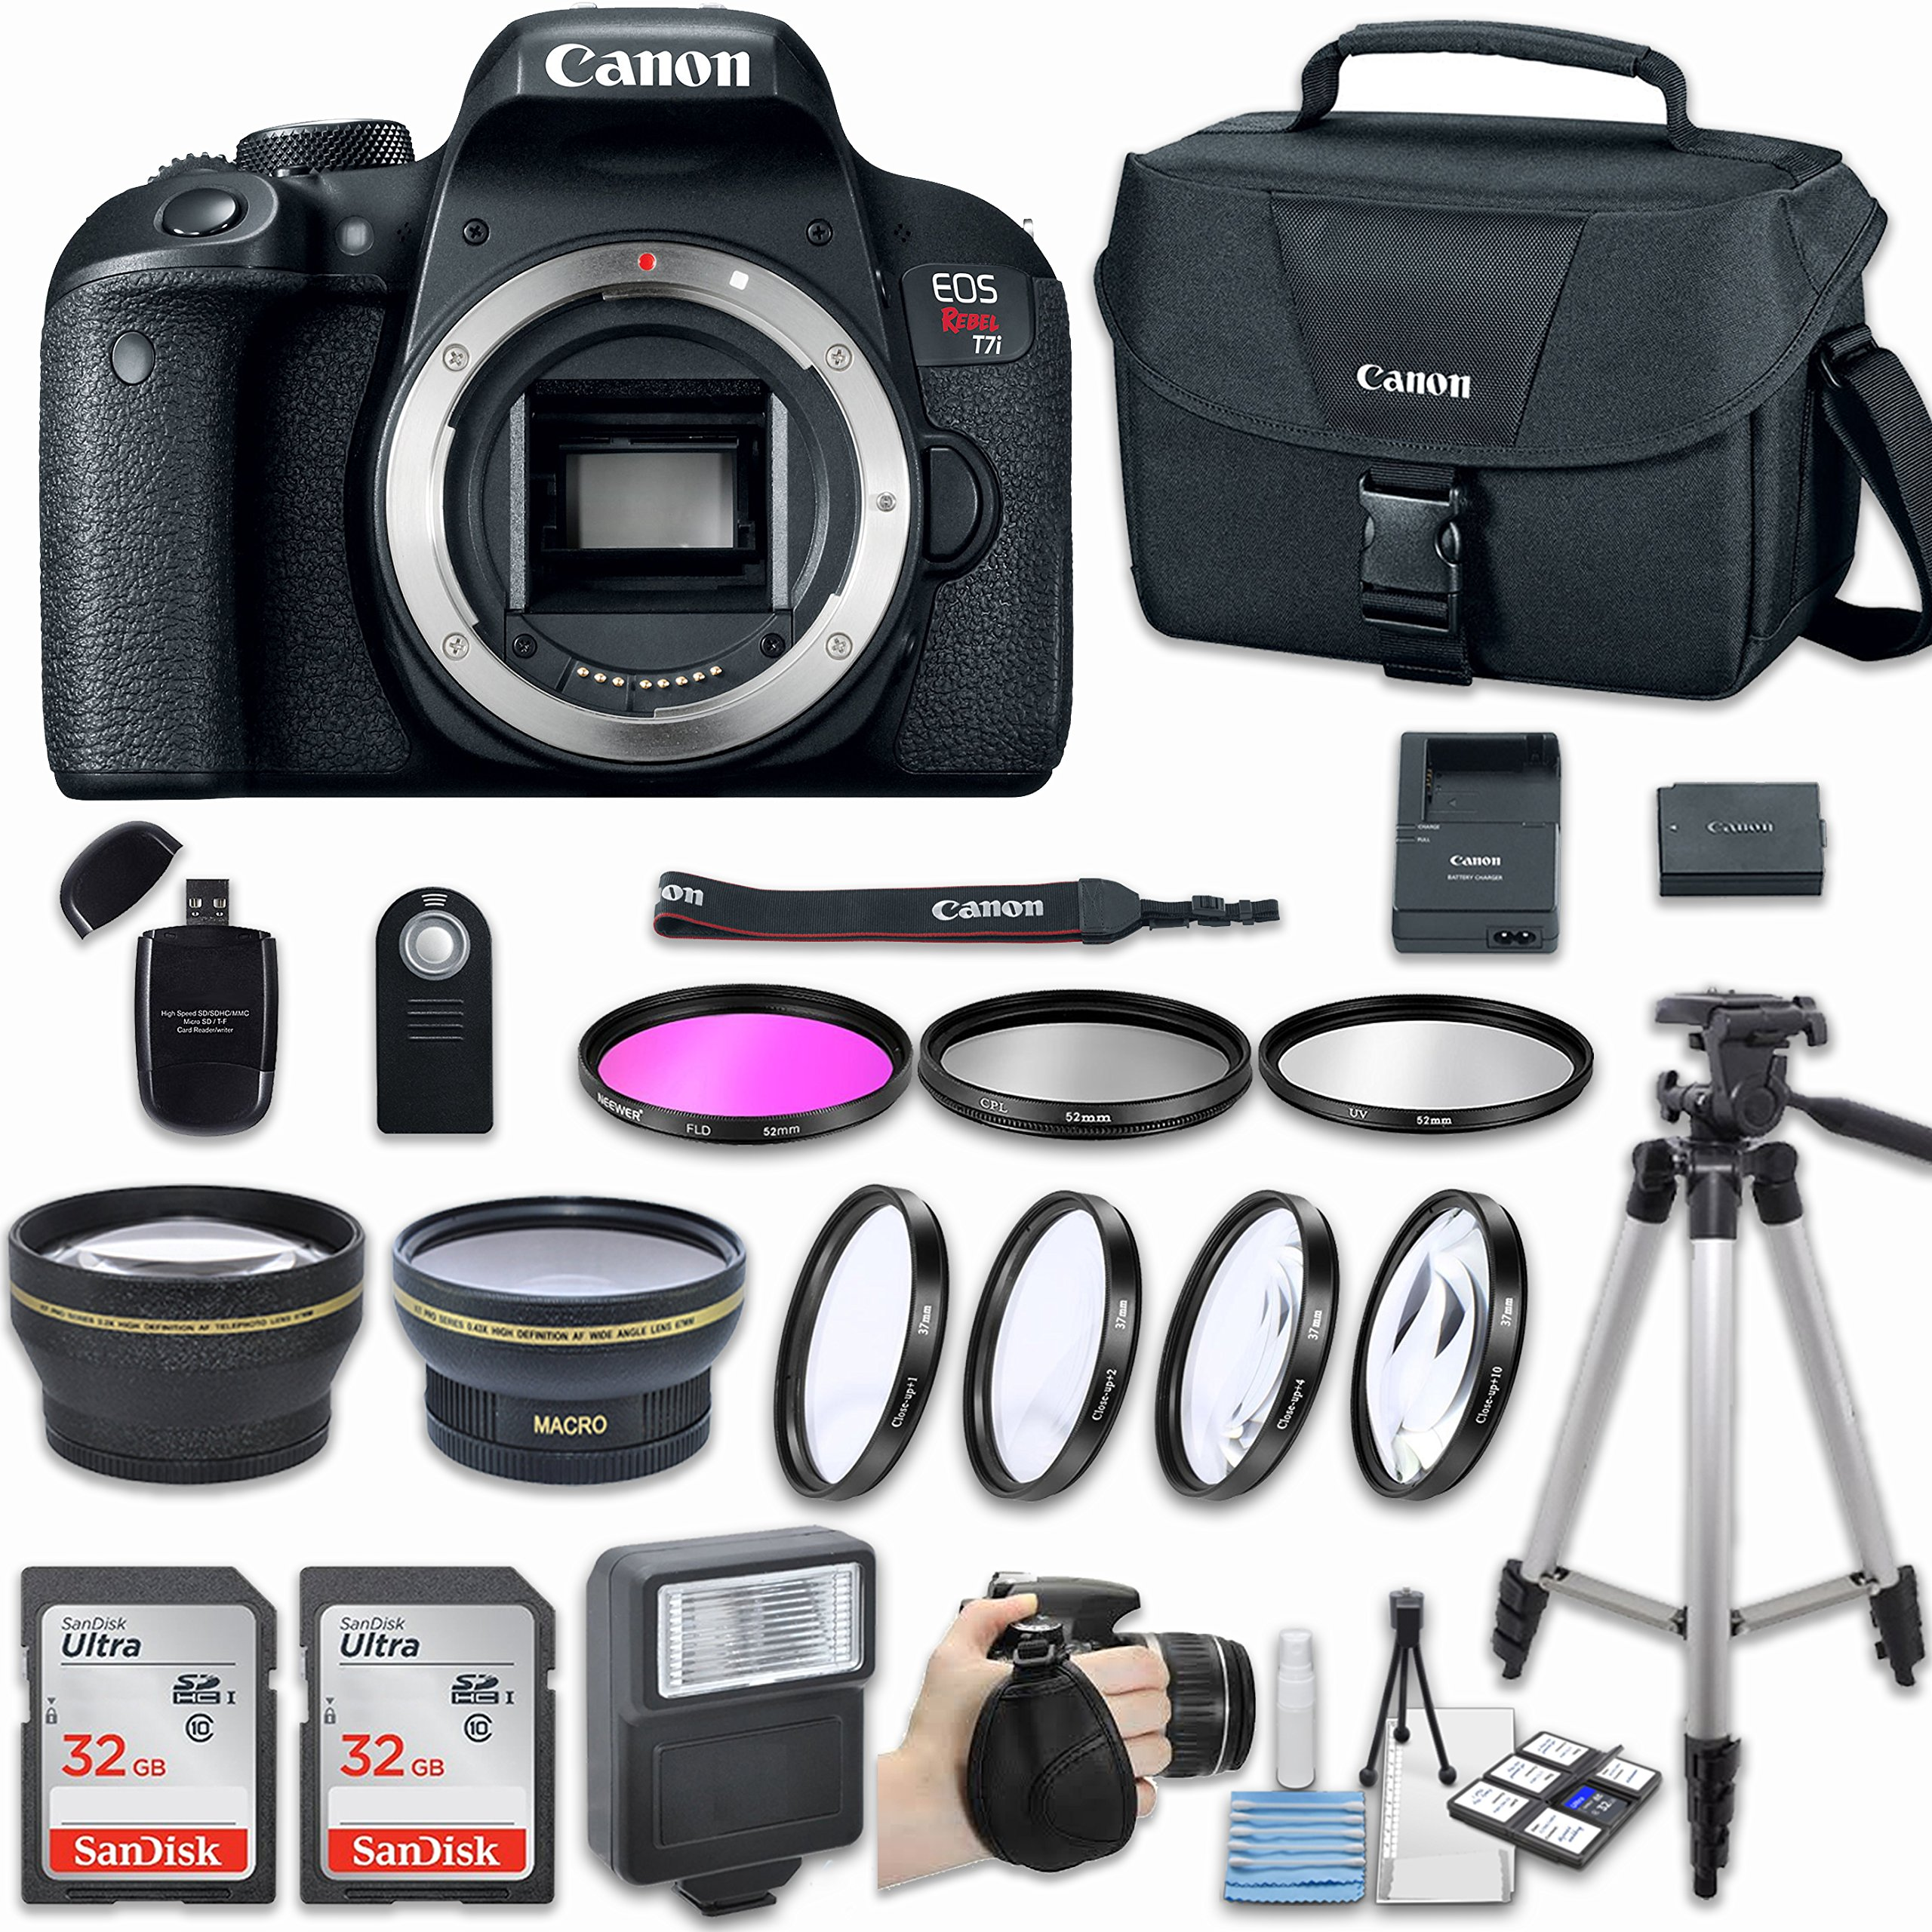 Canon EOS Rebel T7i DSLR Camera (Body Only) with Bundle - Includes 58mm HD Wide Angle Lens + 2.2x Telephoto + 2Pcs 32GB Sandisk SD Memory + Filter & Macro Kit & More Accessories by Canon